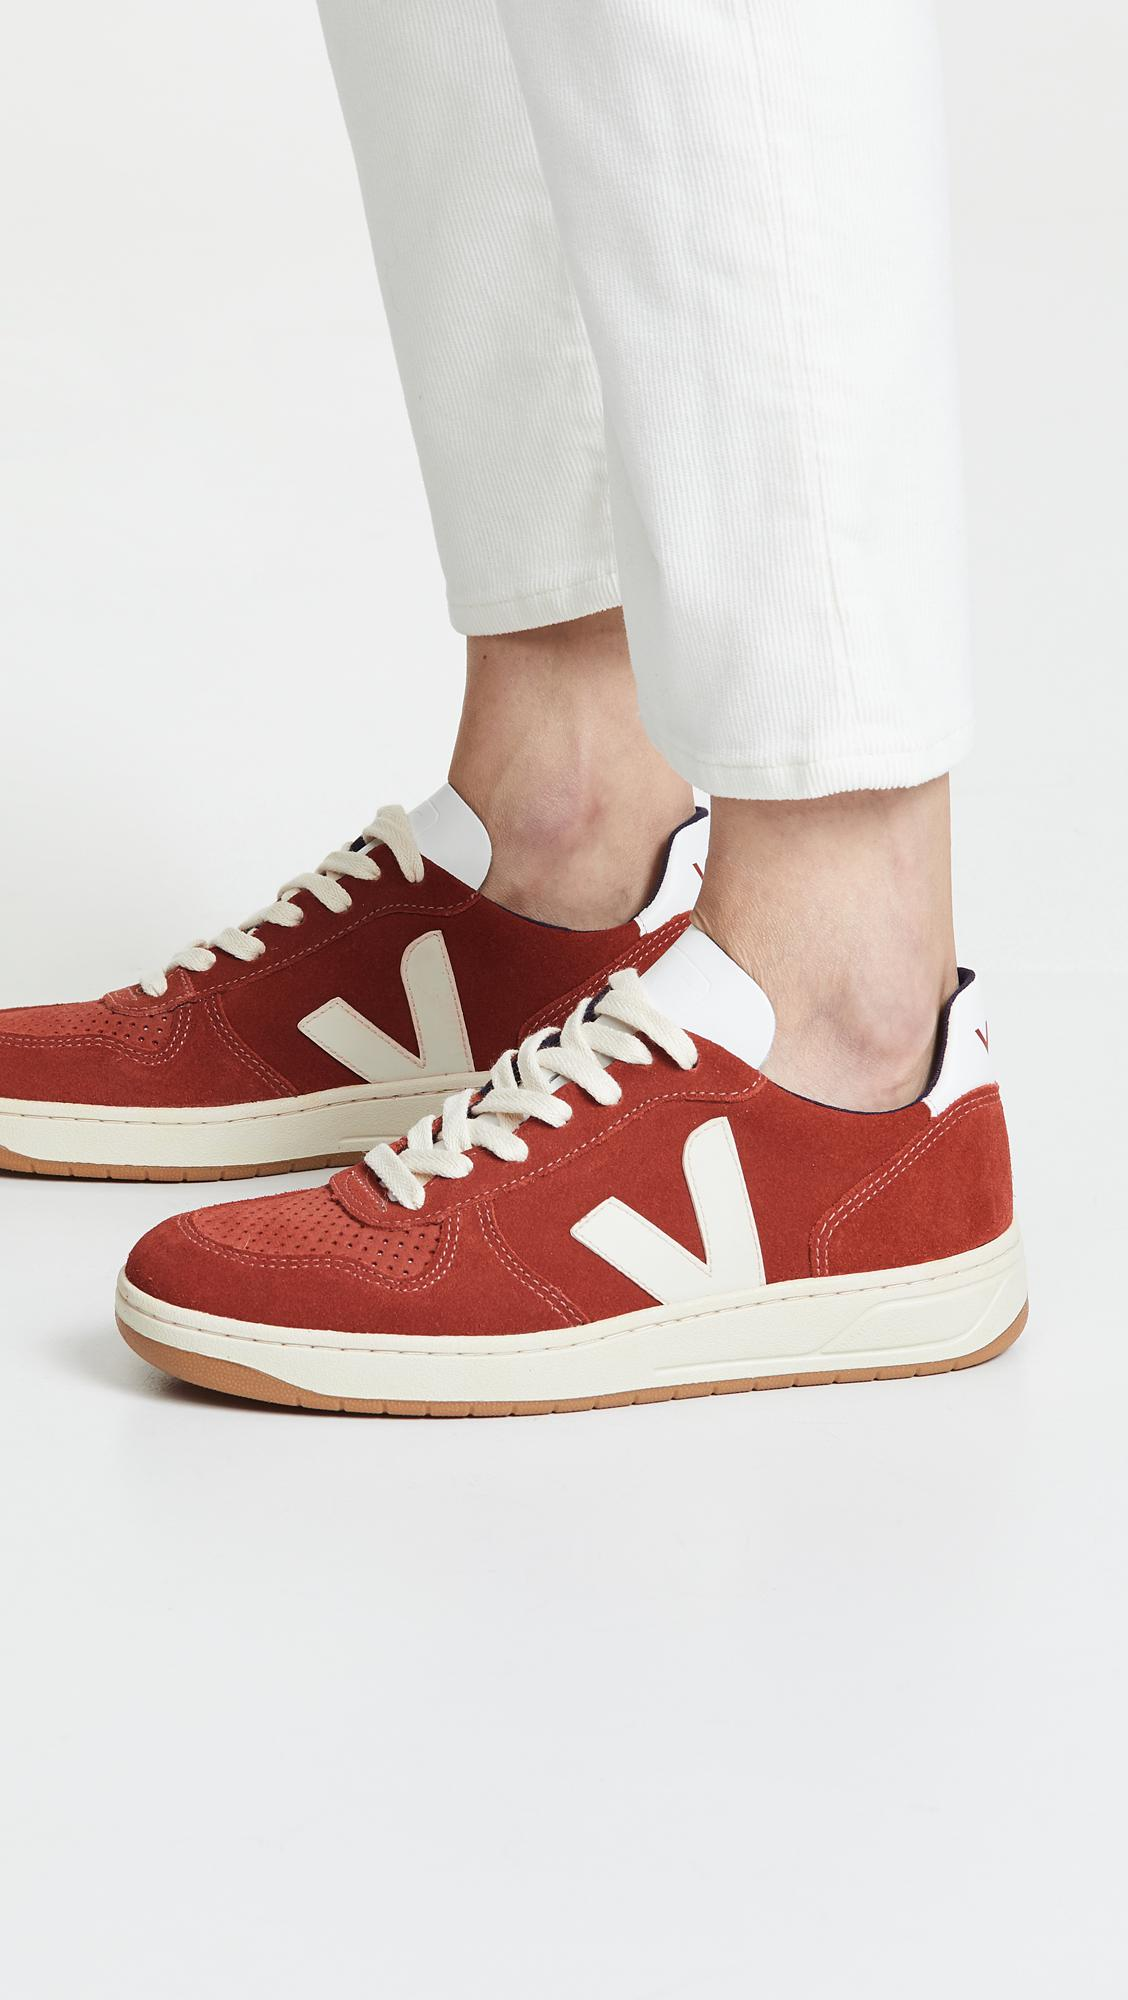 Veja Leather V-10 Sneakers in Red - Lyst